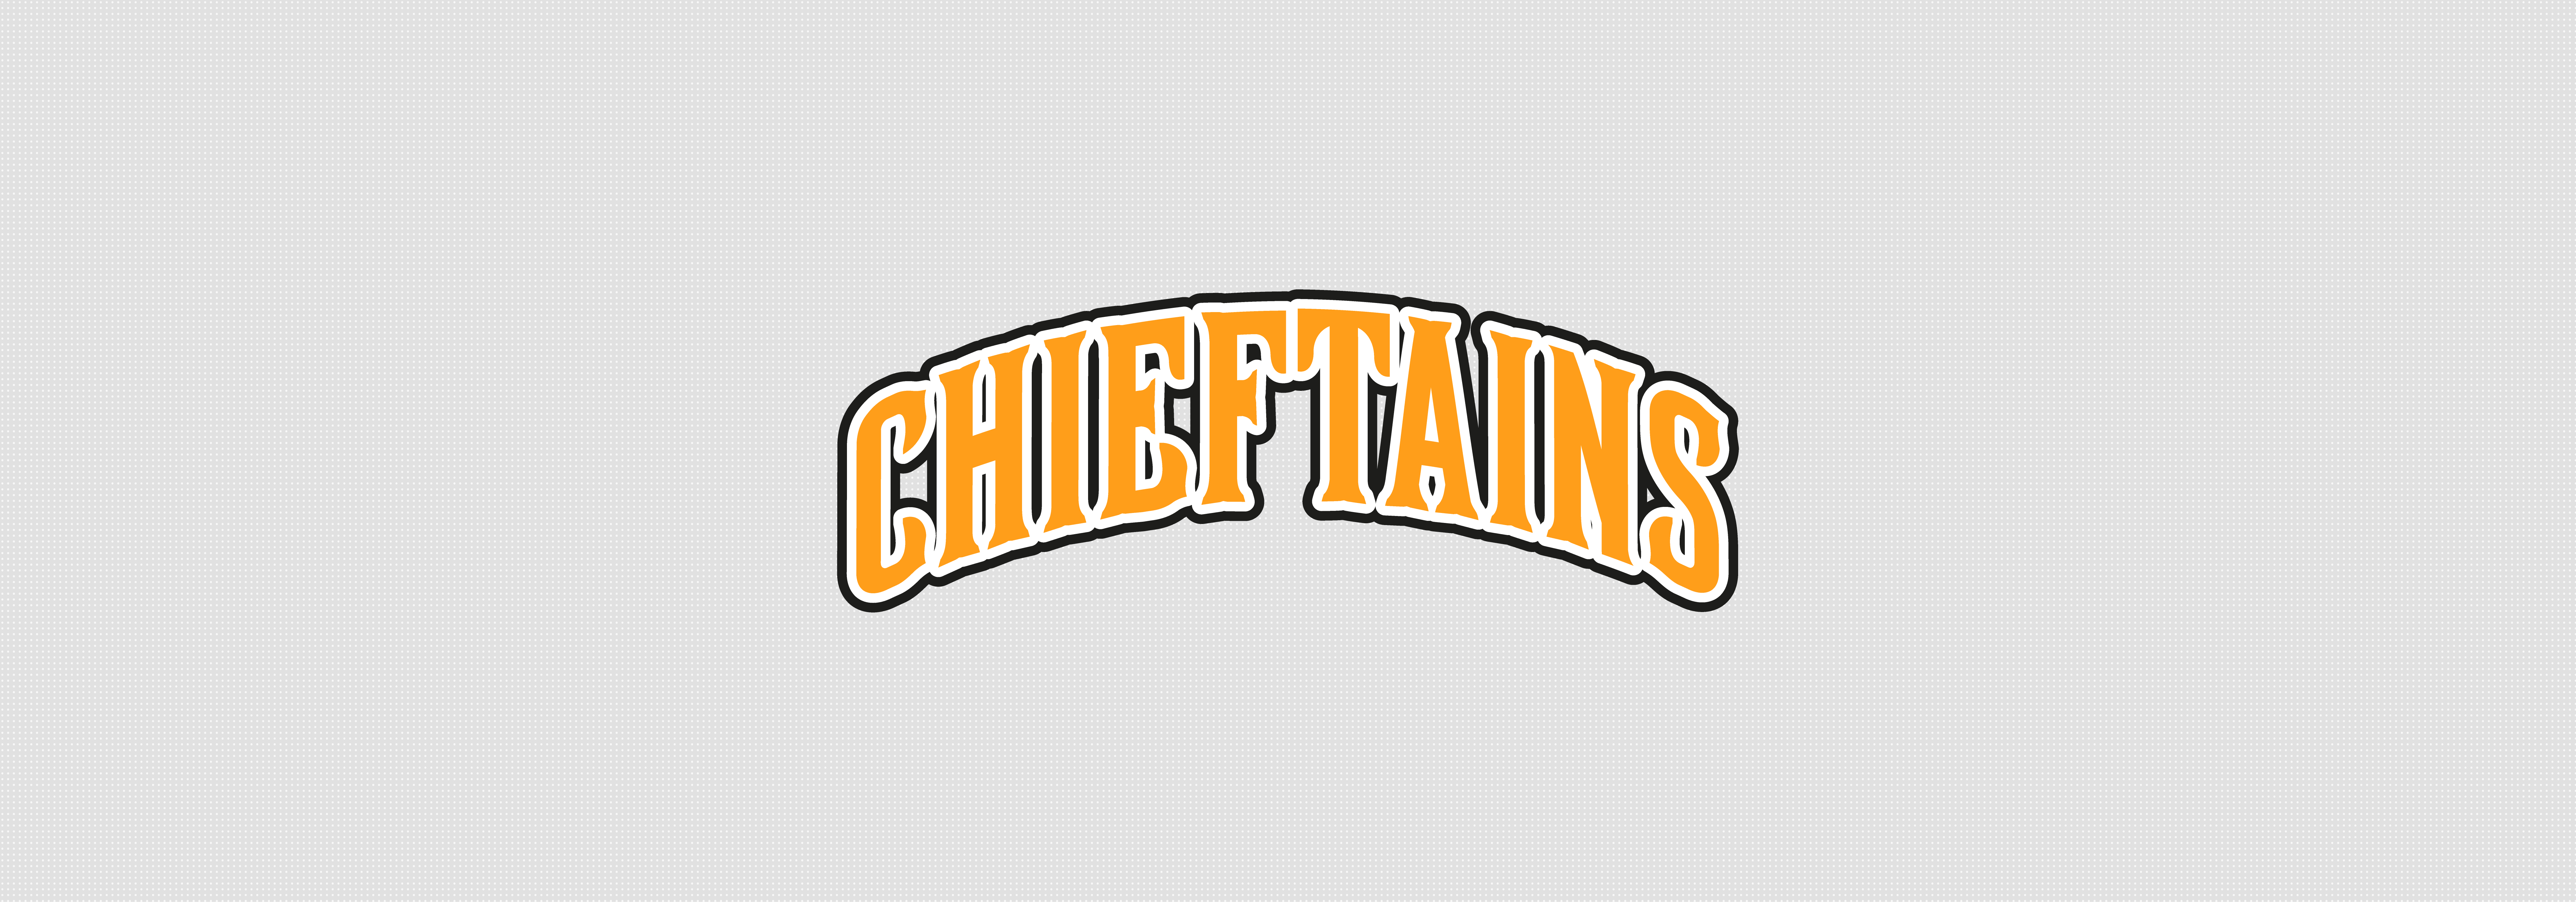 Chelmsford Chieftains Home Jersey